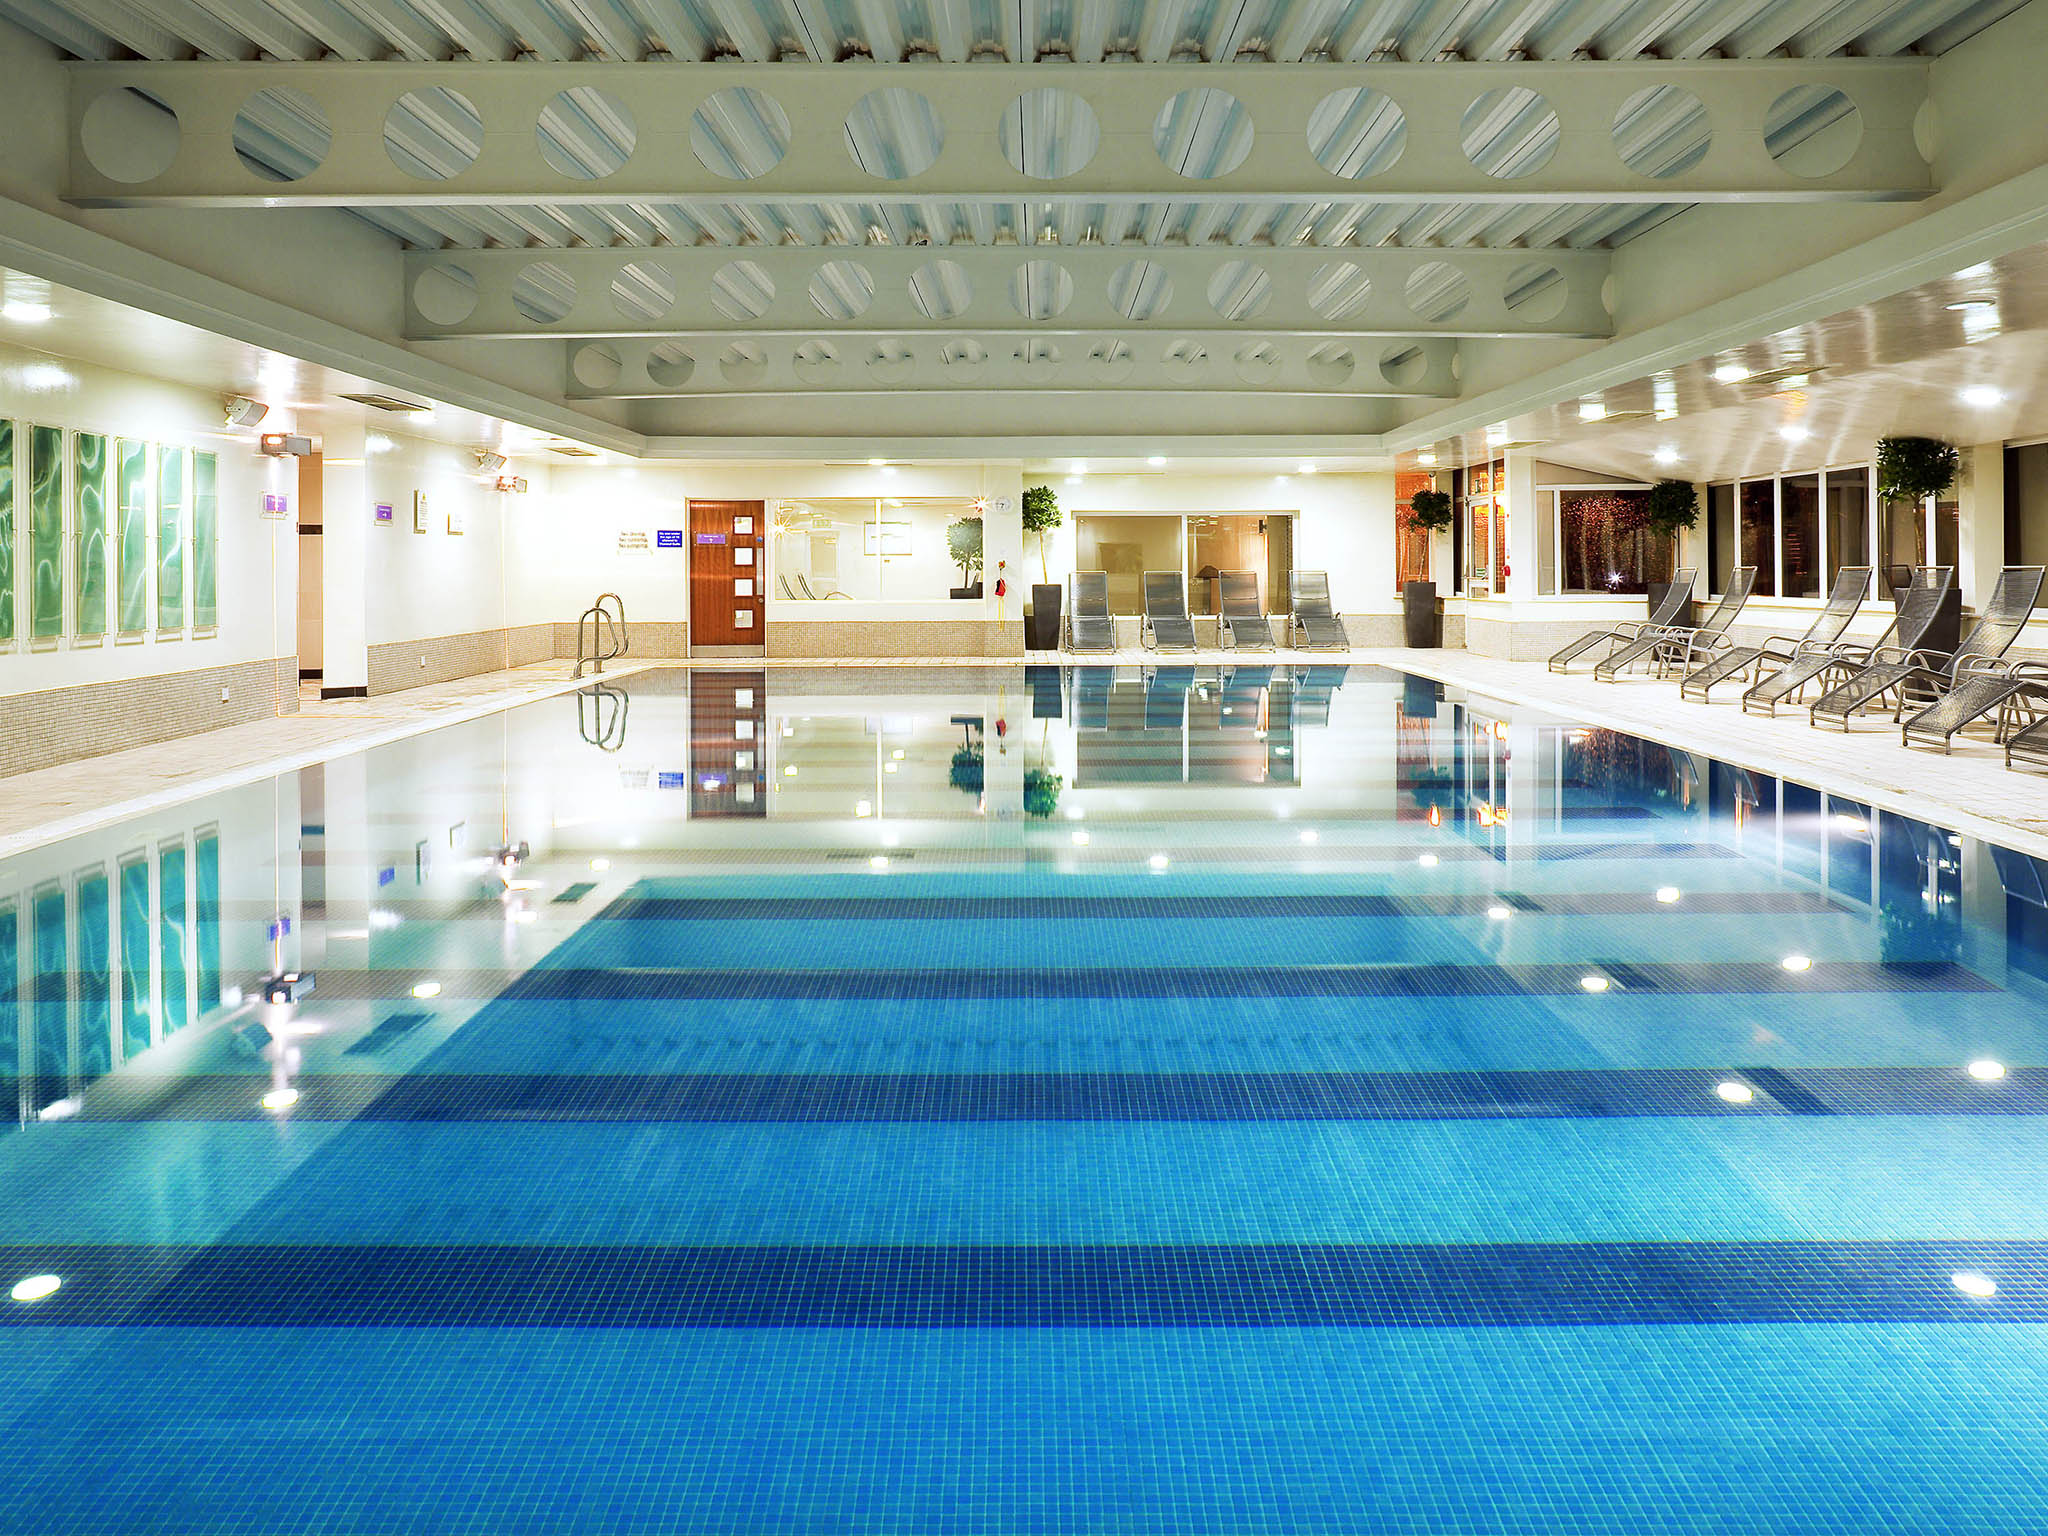 Hotel en rochdale mercure manchester norton grange hotel spa for Gyms in manchester city centre with swimming pools